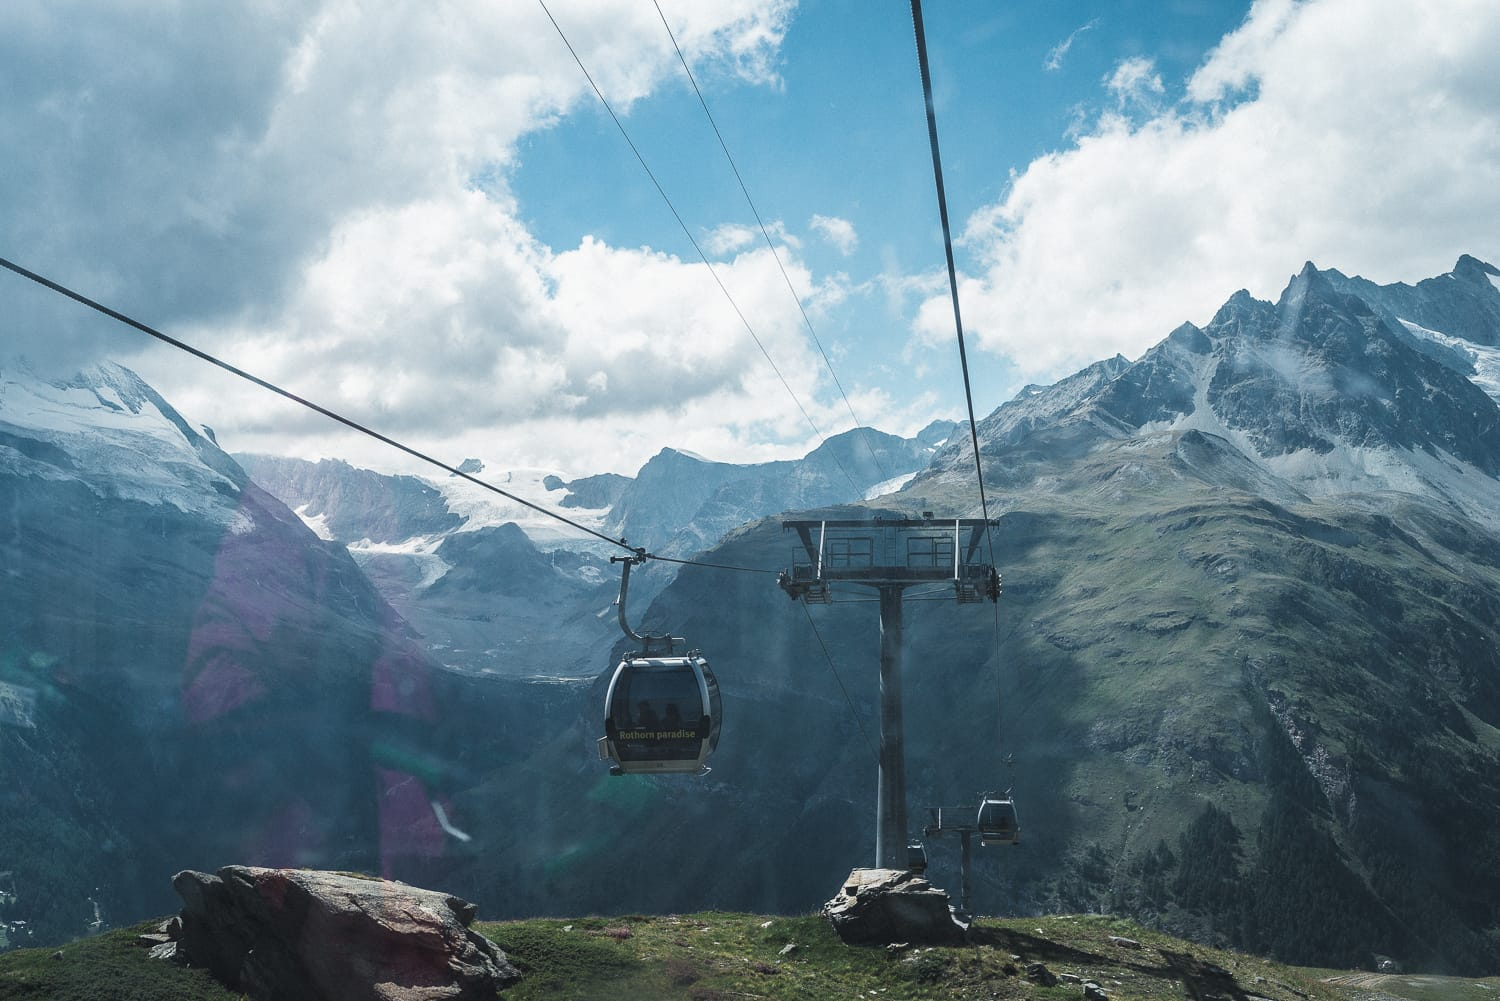 taking the lift up in the Swiss alps